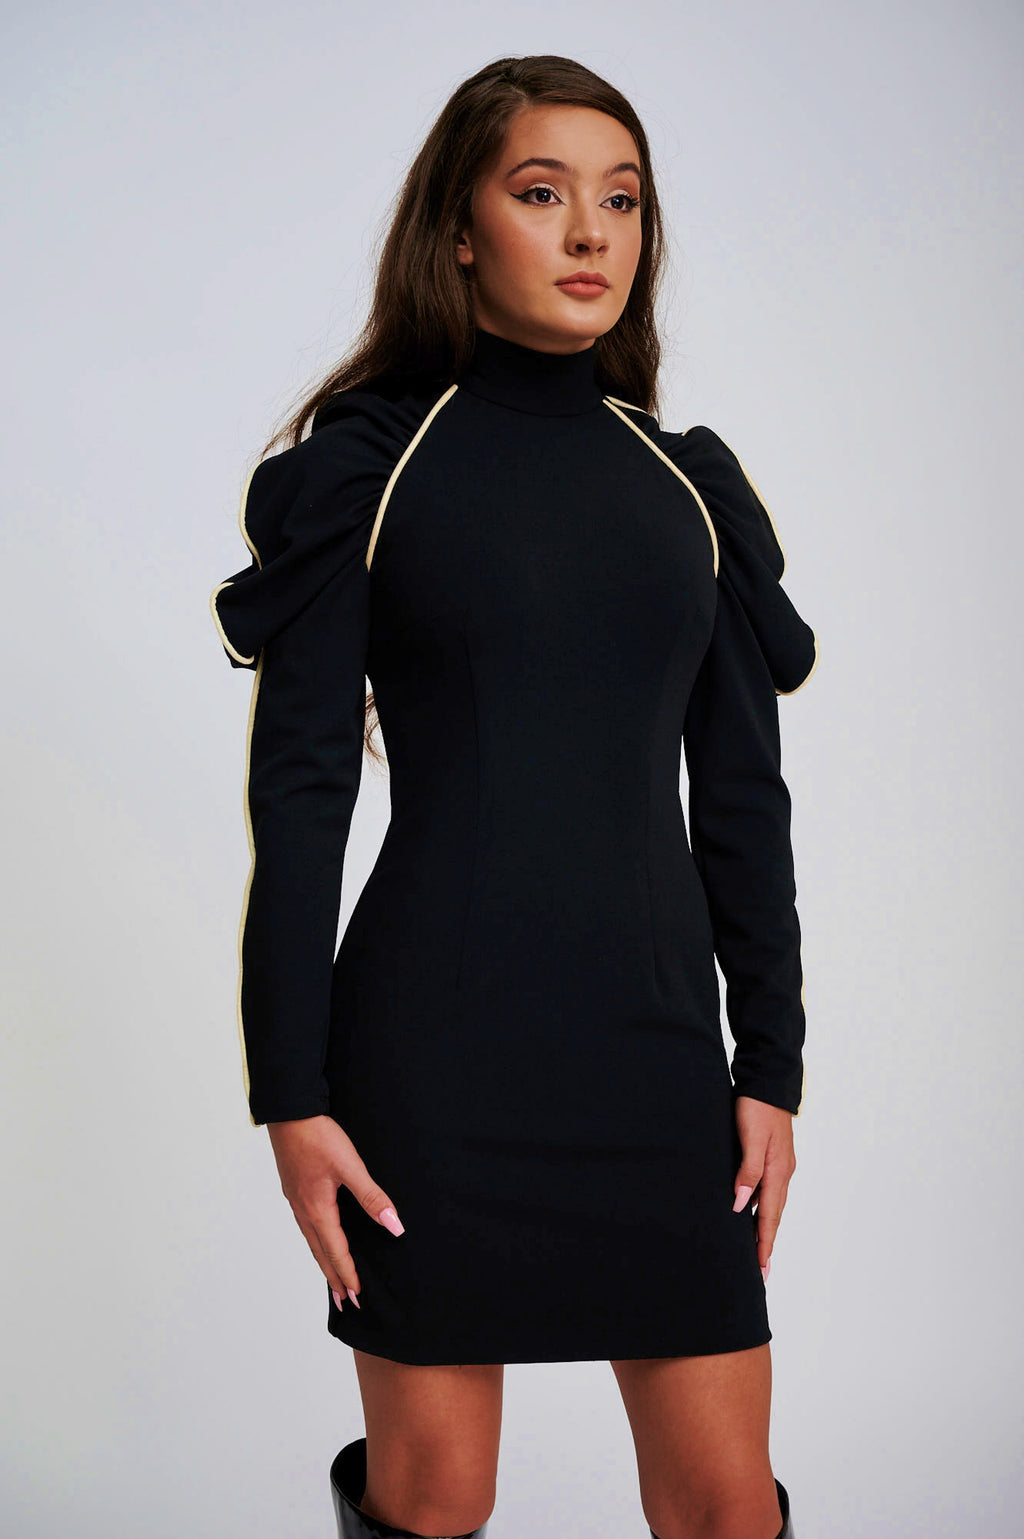 The EOS Black Dress With White Velvet Piping